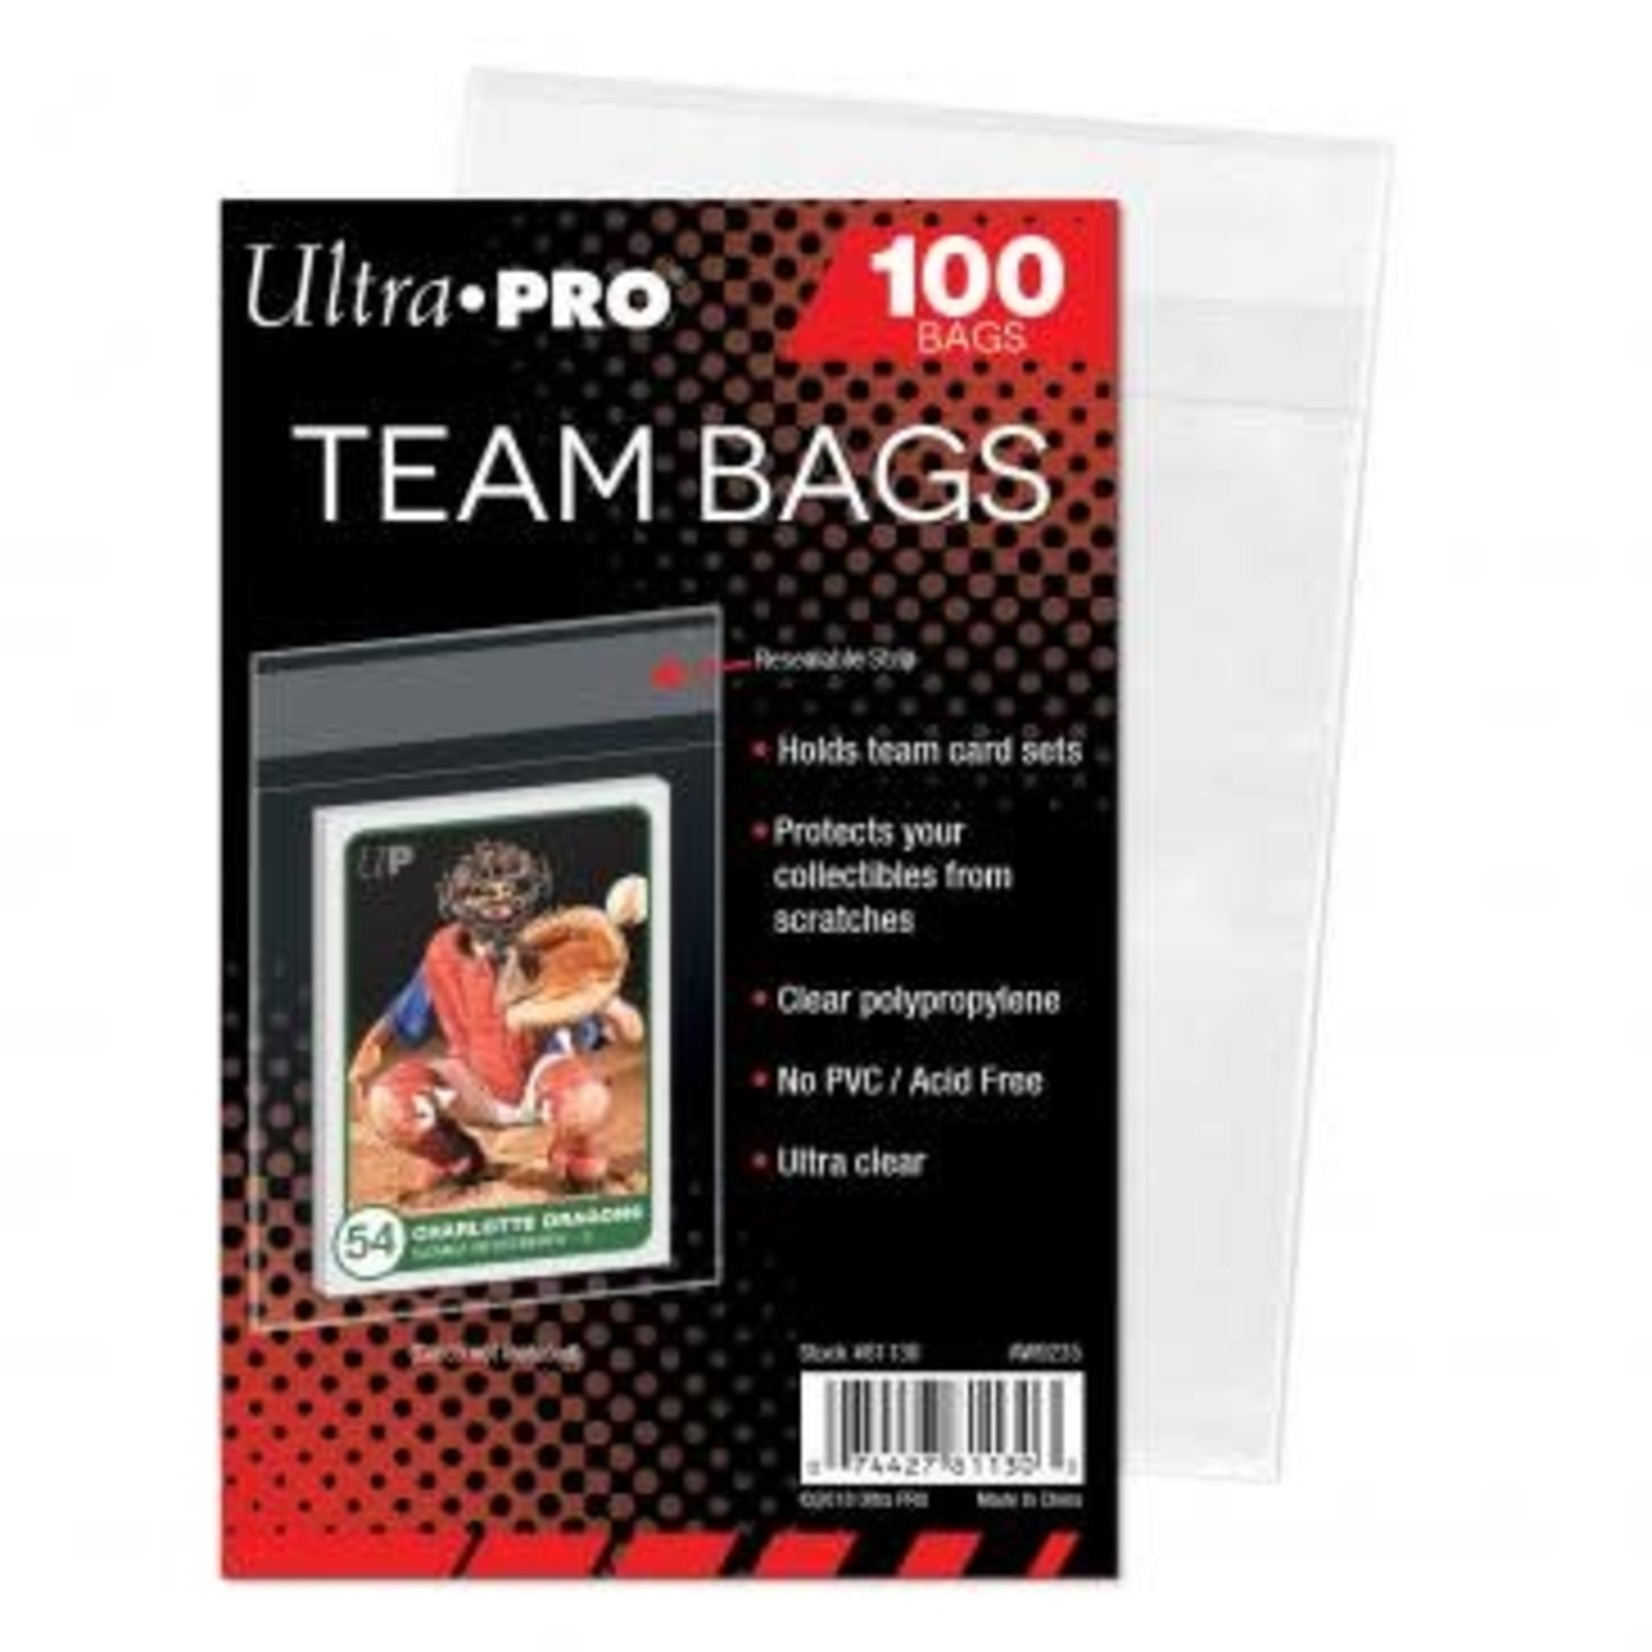 Ultra Pro Team Bags (100 count)